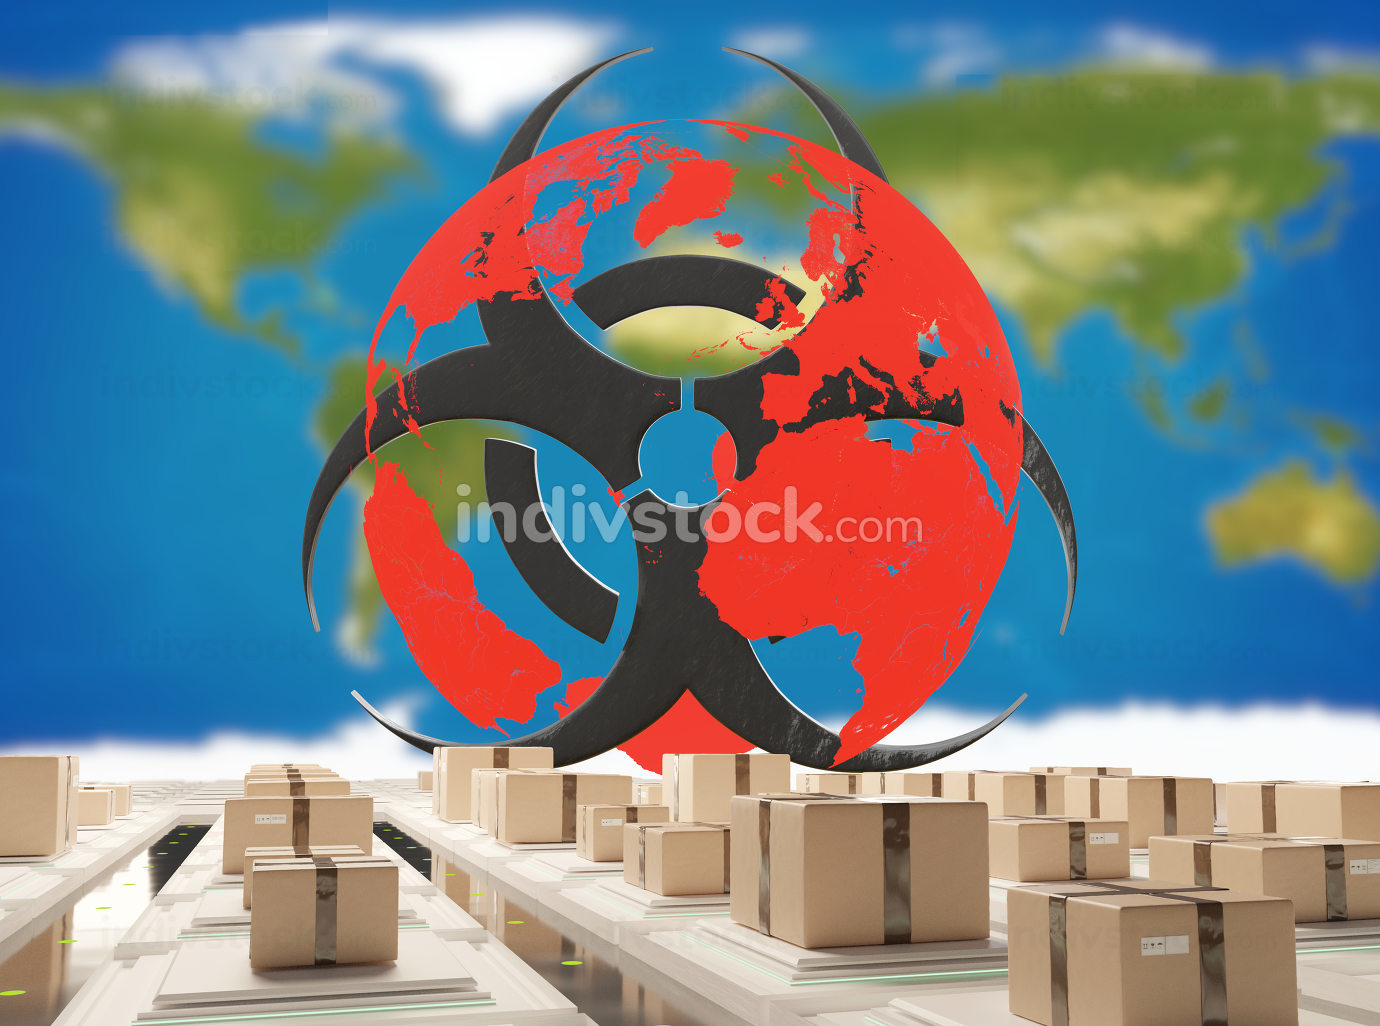 free download: postal parcel packages with red world wide globe with warning biohazard symbol 3d-illustration.elements of this image furnished by NASA